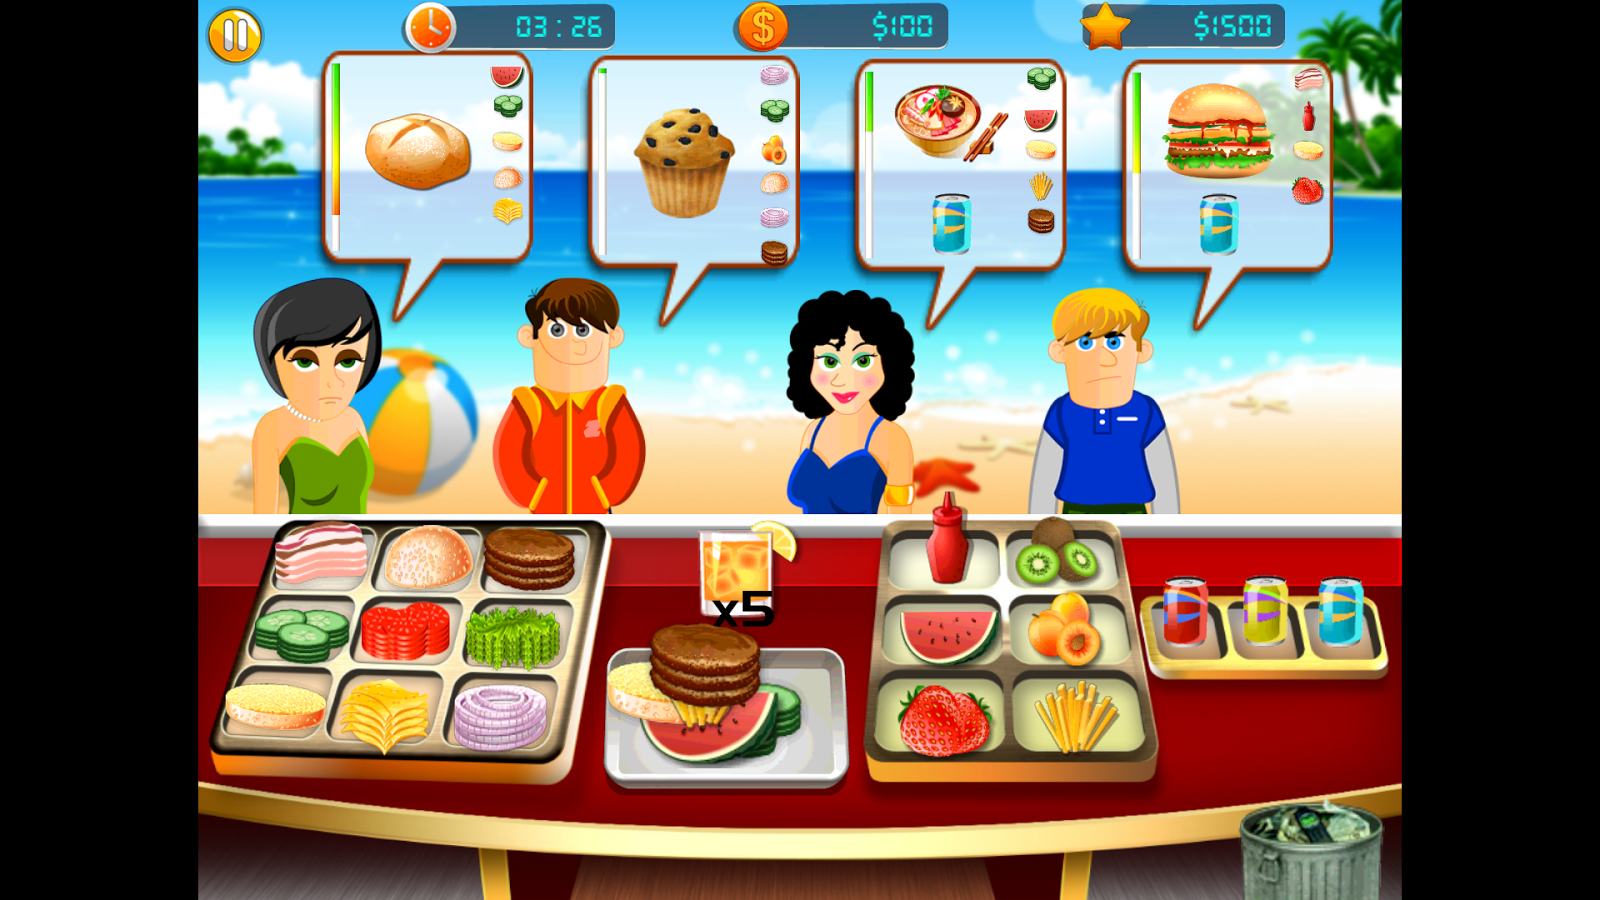 Cooking Games for Girls  screenshot. Cooking Games for Girls   Android Apps on Google Play